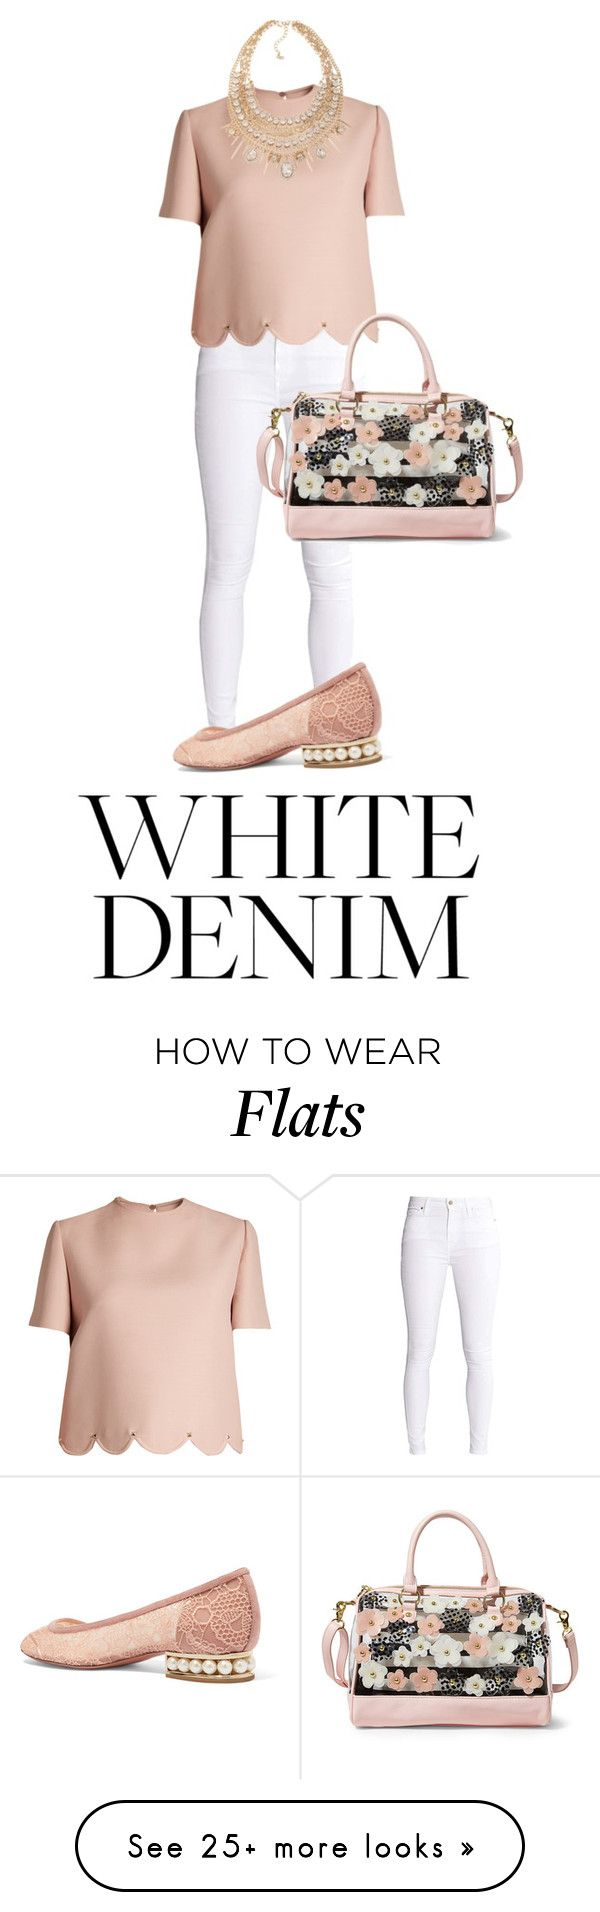 """""""Spring White Denim"""" by pastelheart1997 on Polyvore featuring Valentino, ABS by Allen Schwartz, Nicholas Kirkwood, Betsey Johnson and whitejeans"""